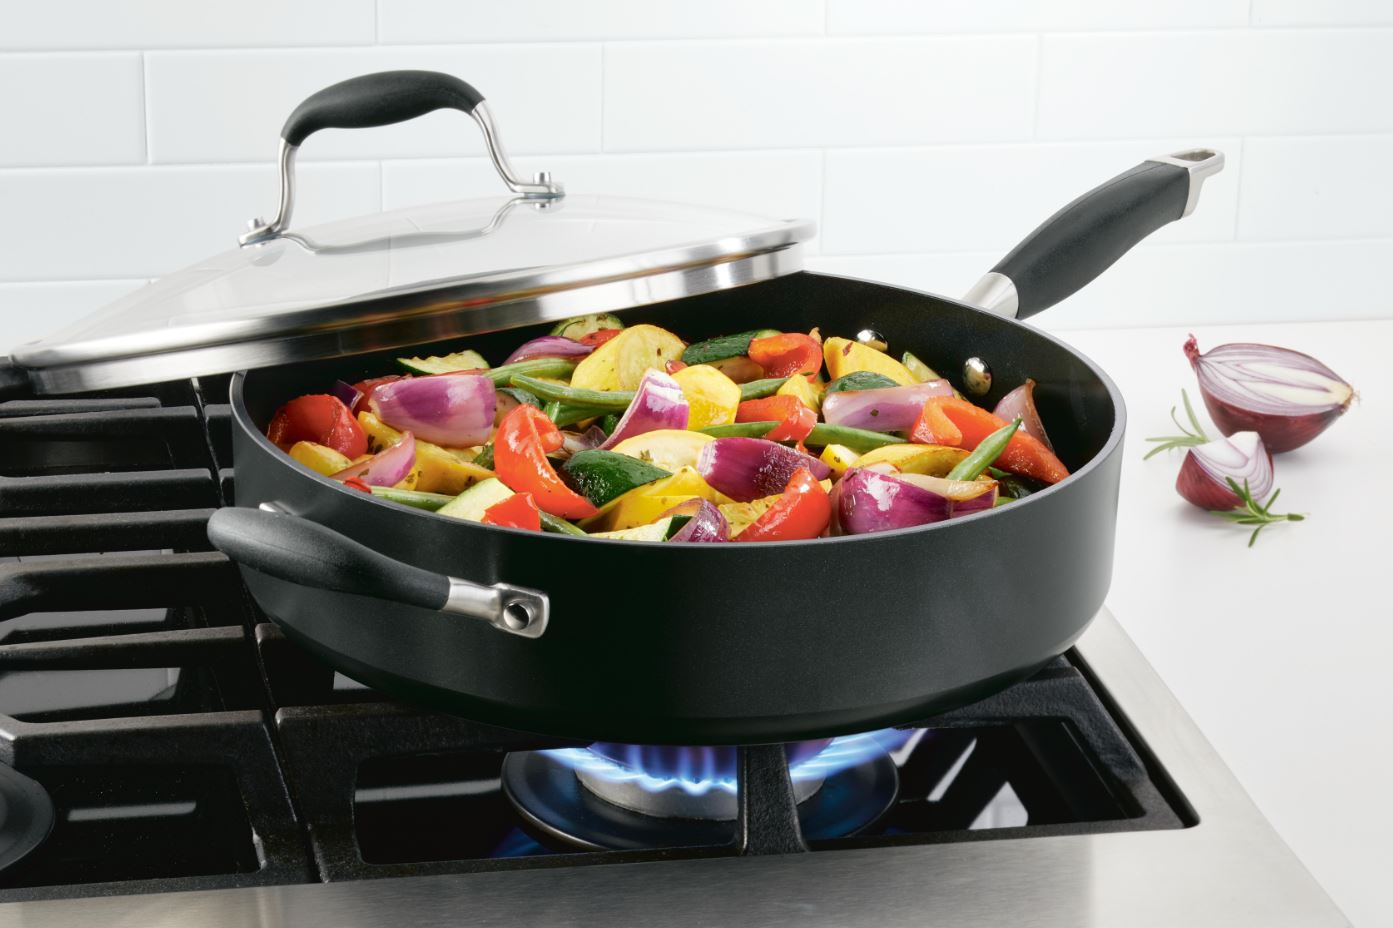 Anolon Advanced Home Saute Pan with Veggie Stir Fry in Onyx